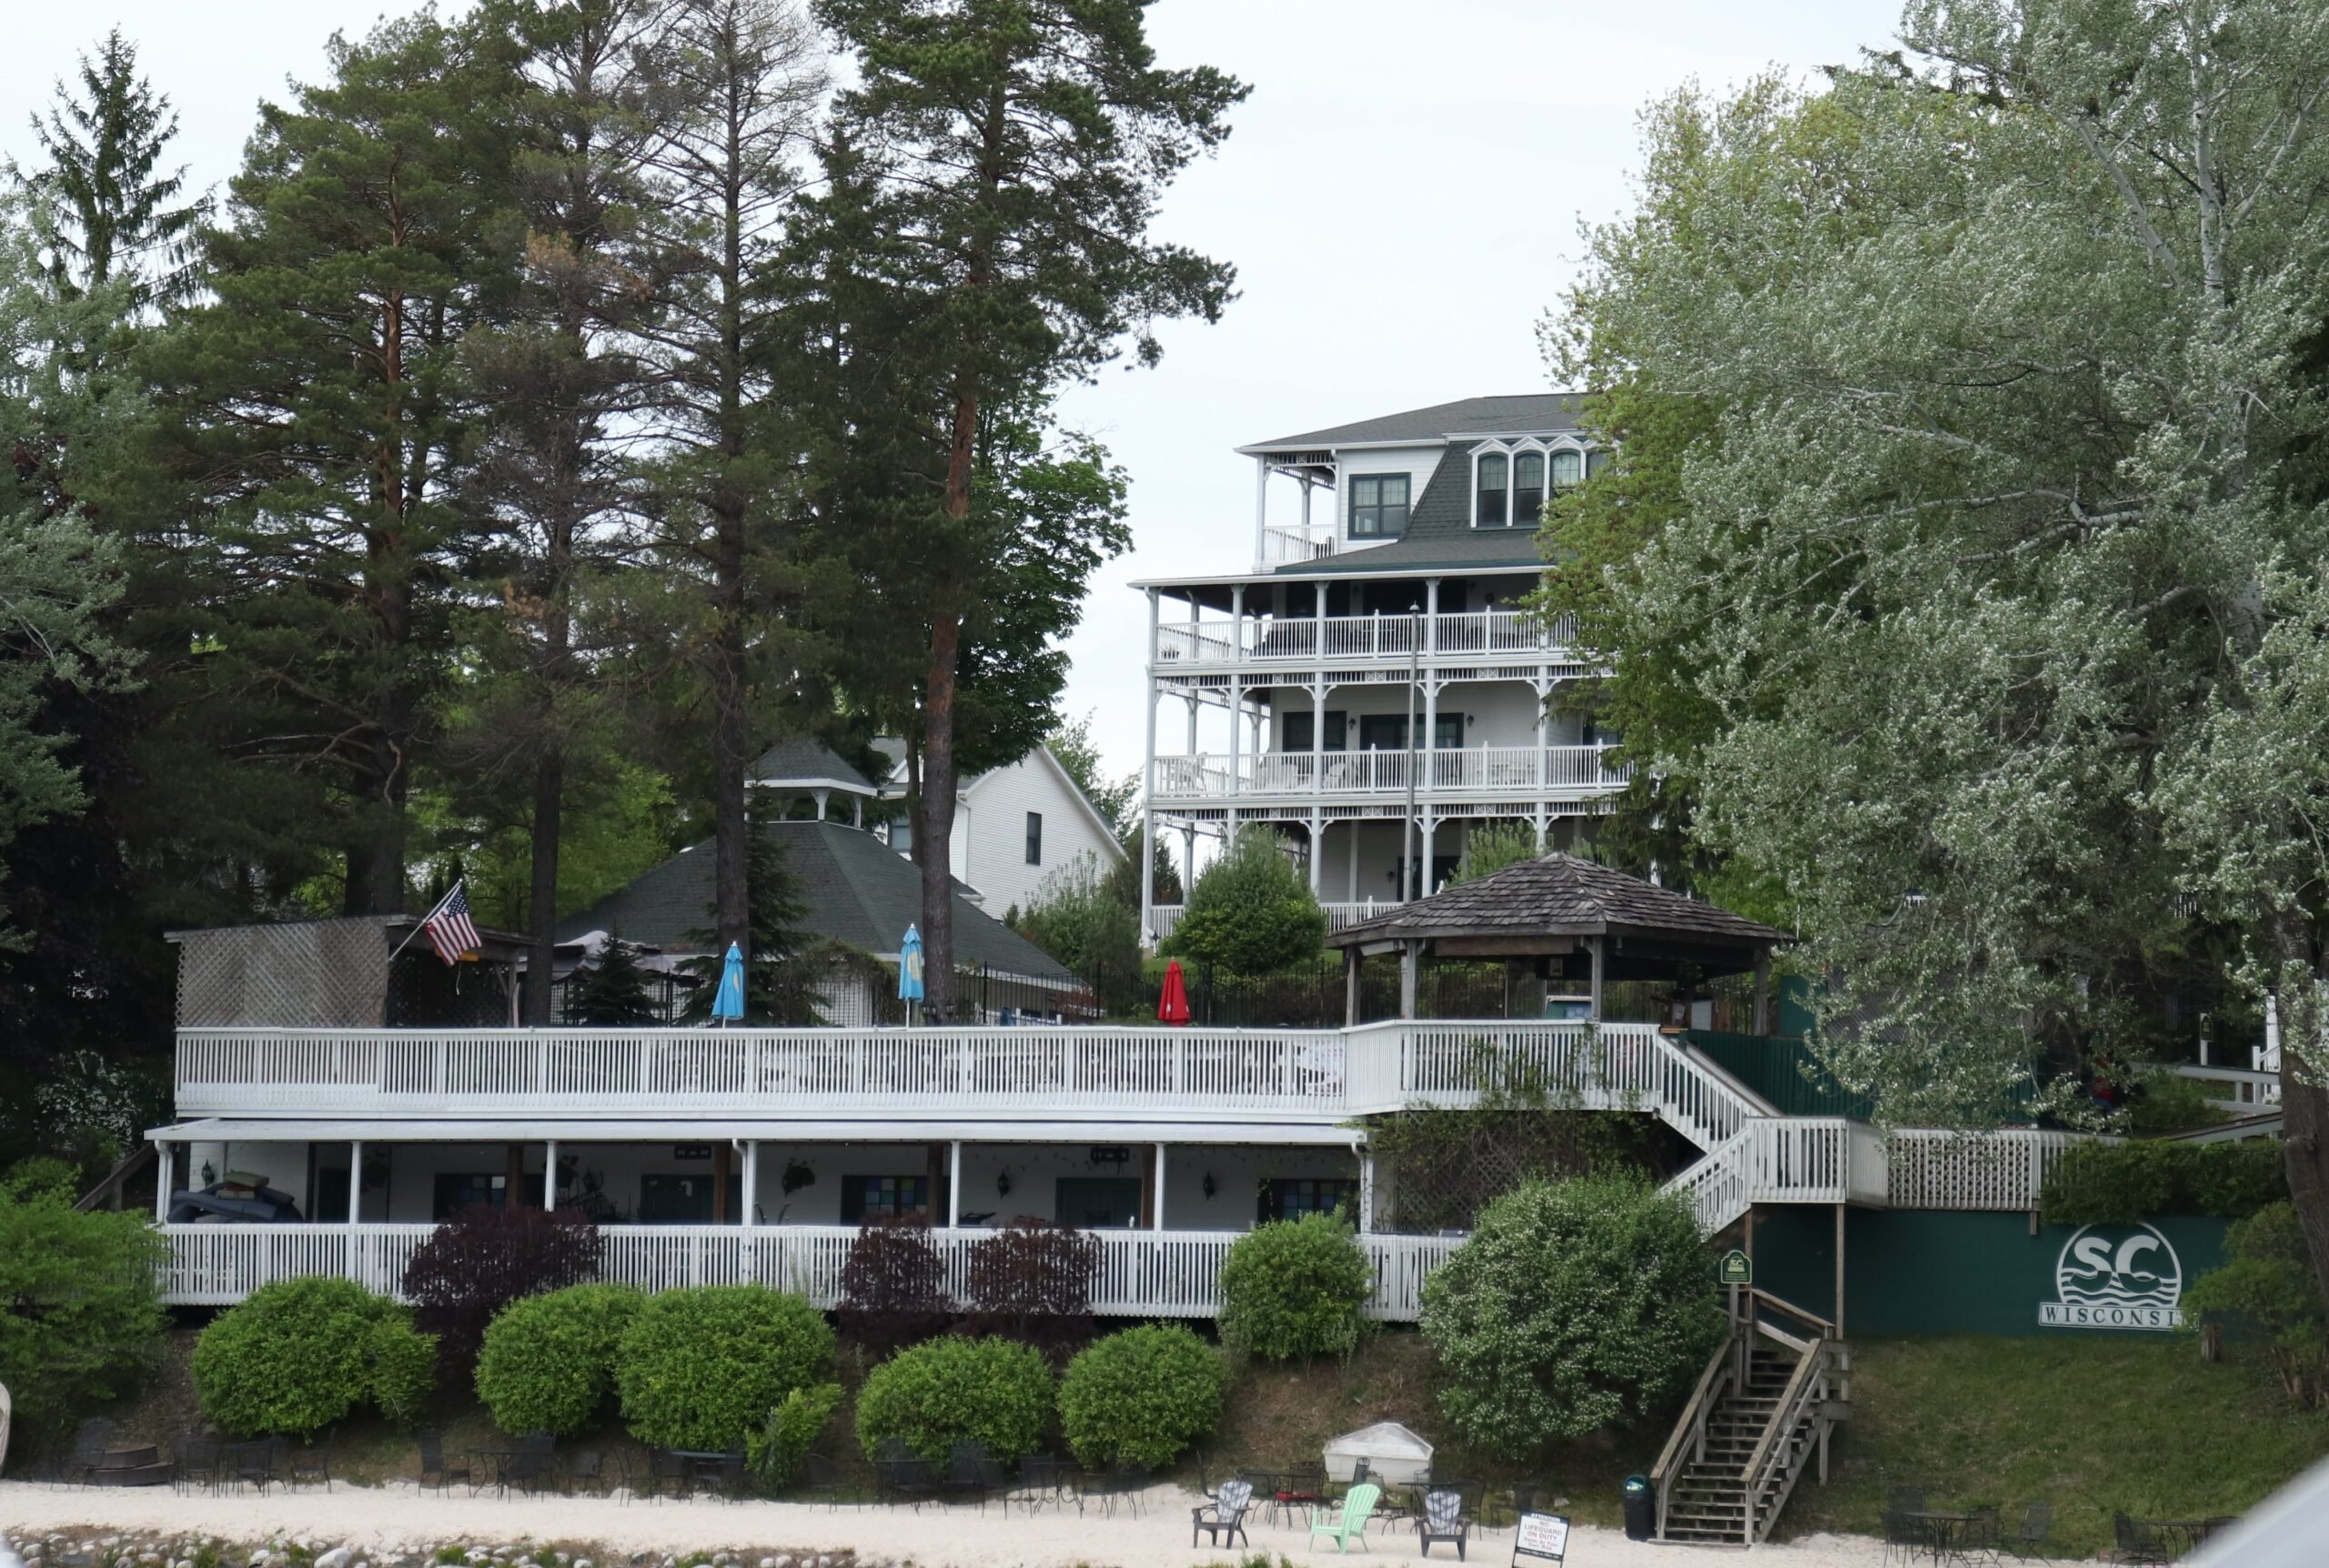 View of The Shore Club from the water in Elkhart Lake, WI.